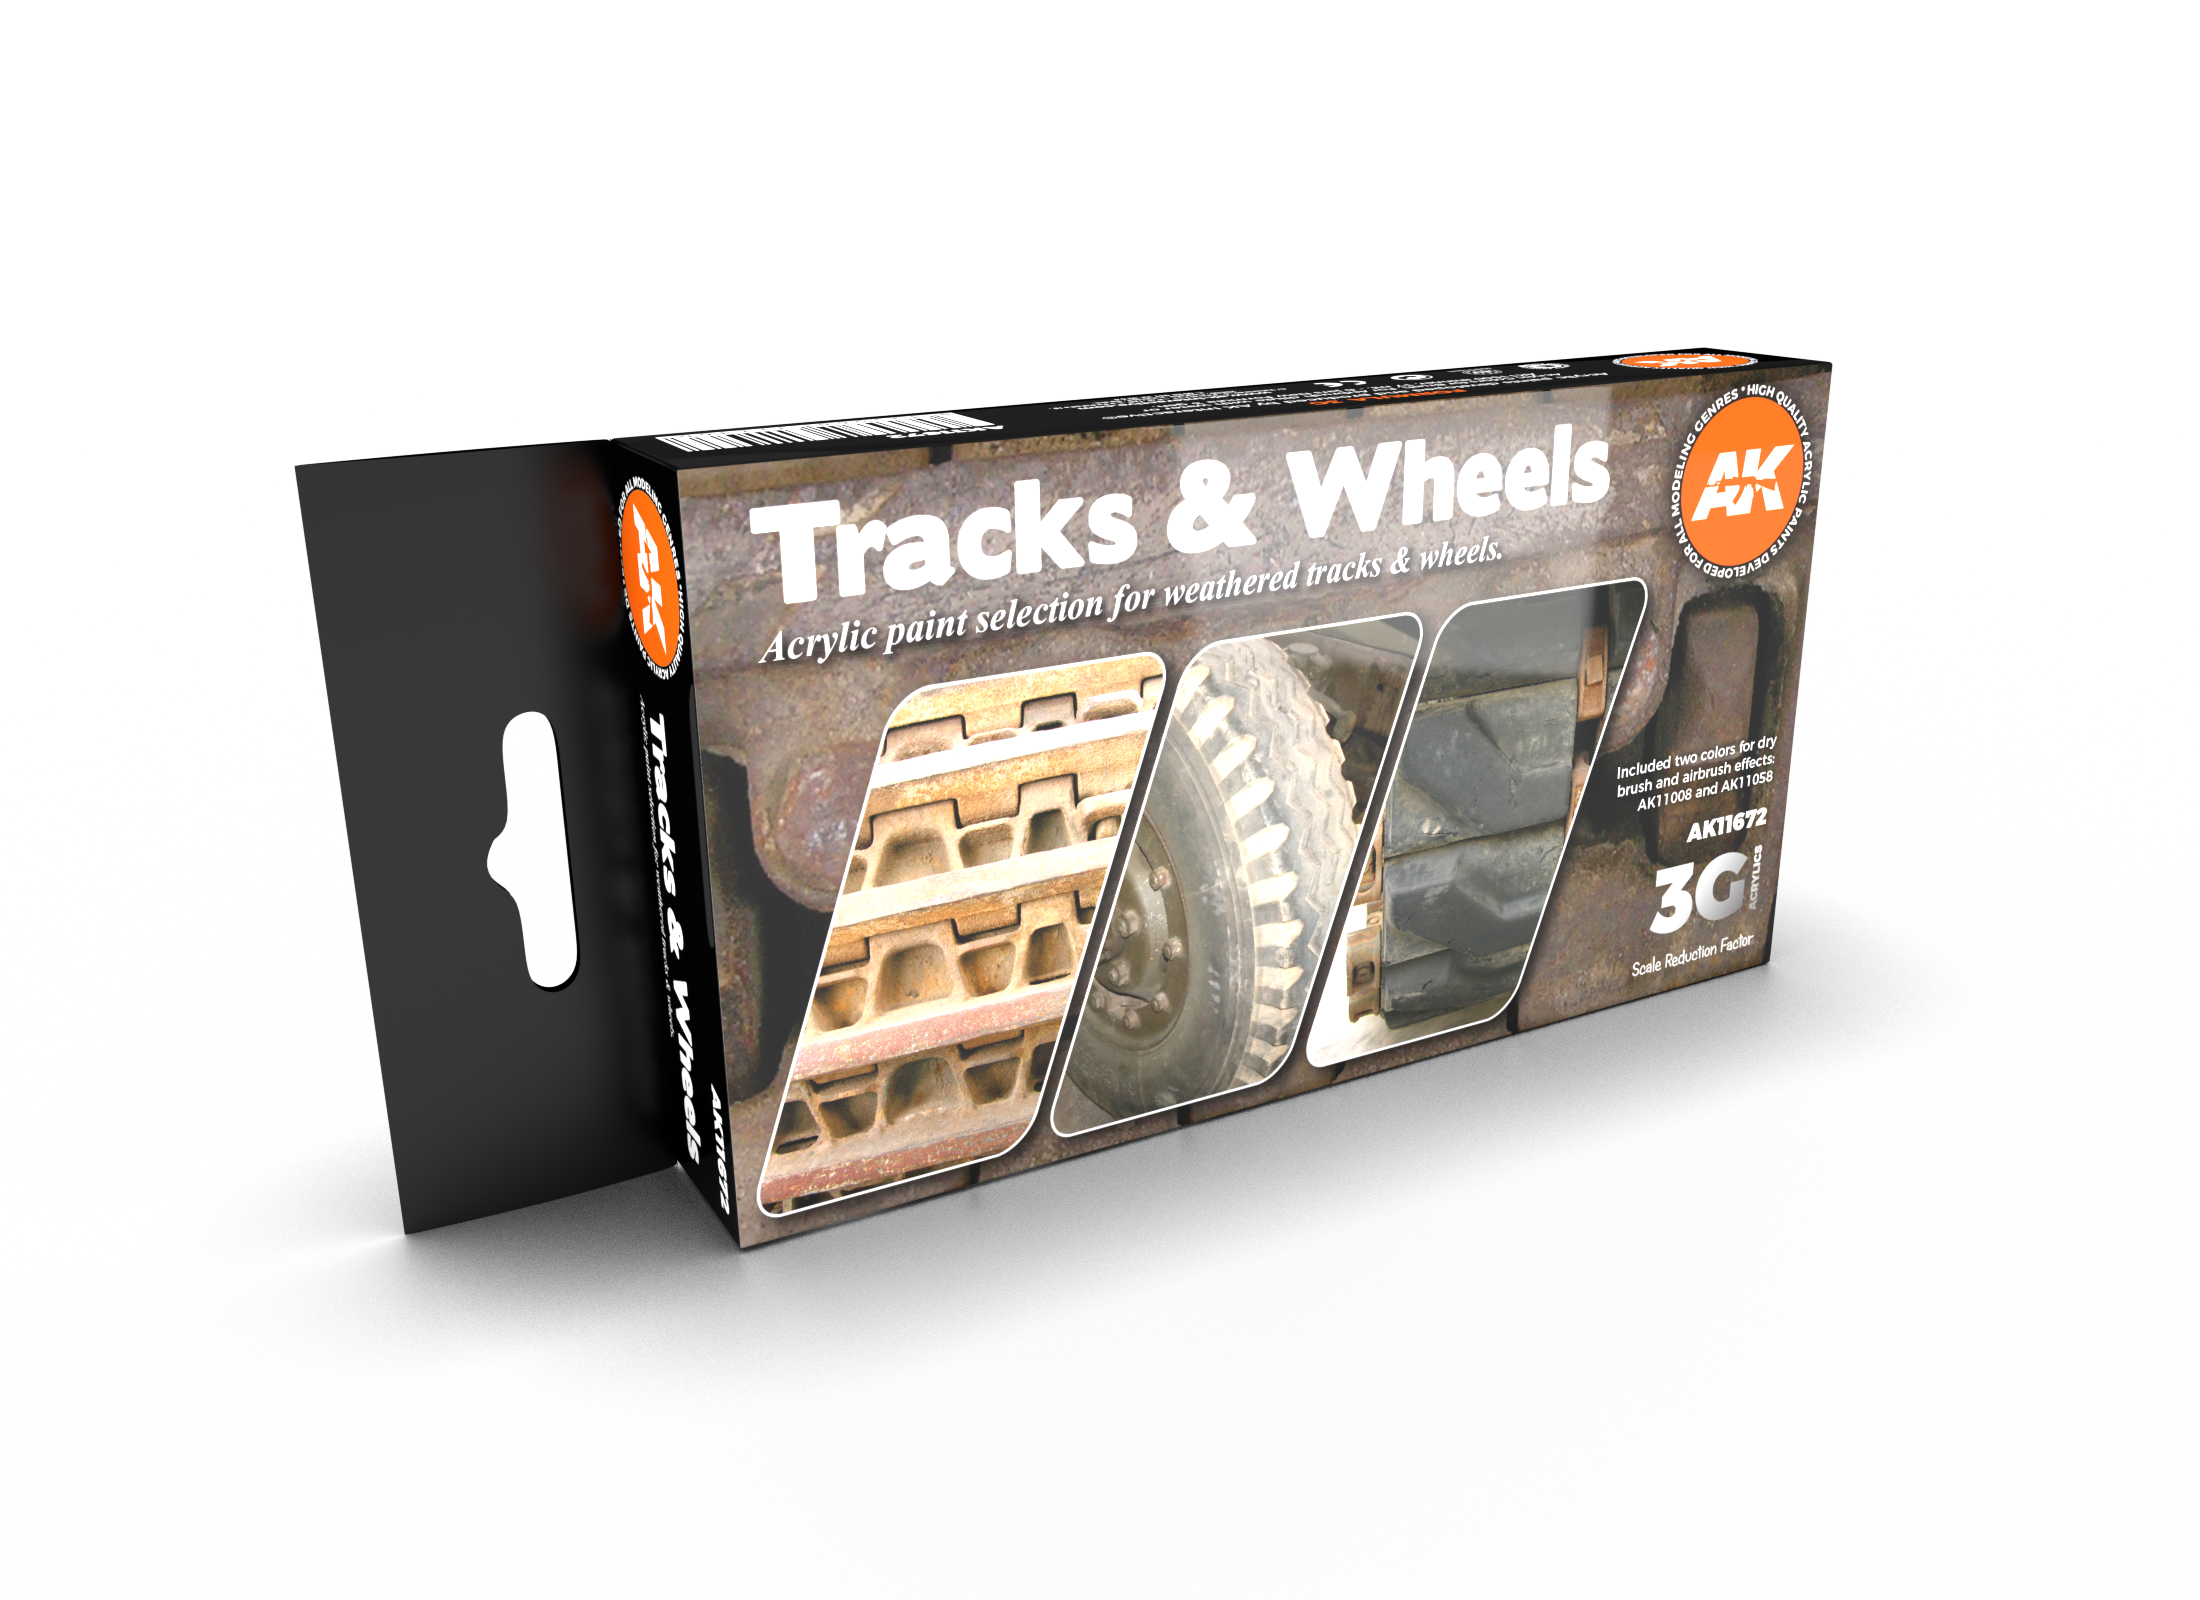 AK Interactive 3G Tracks And Wheels